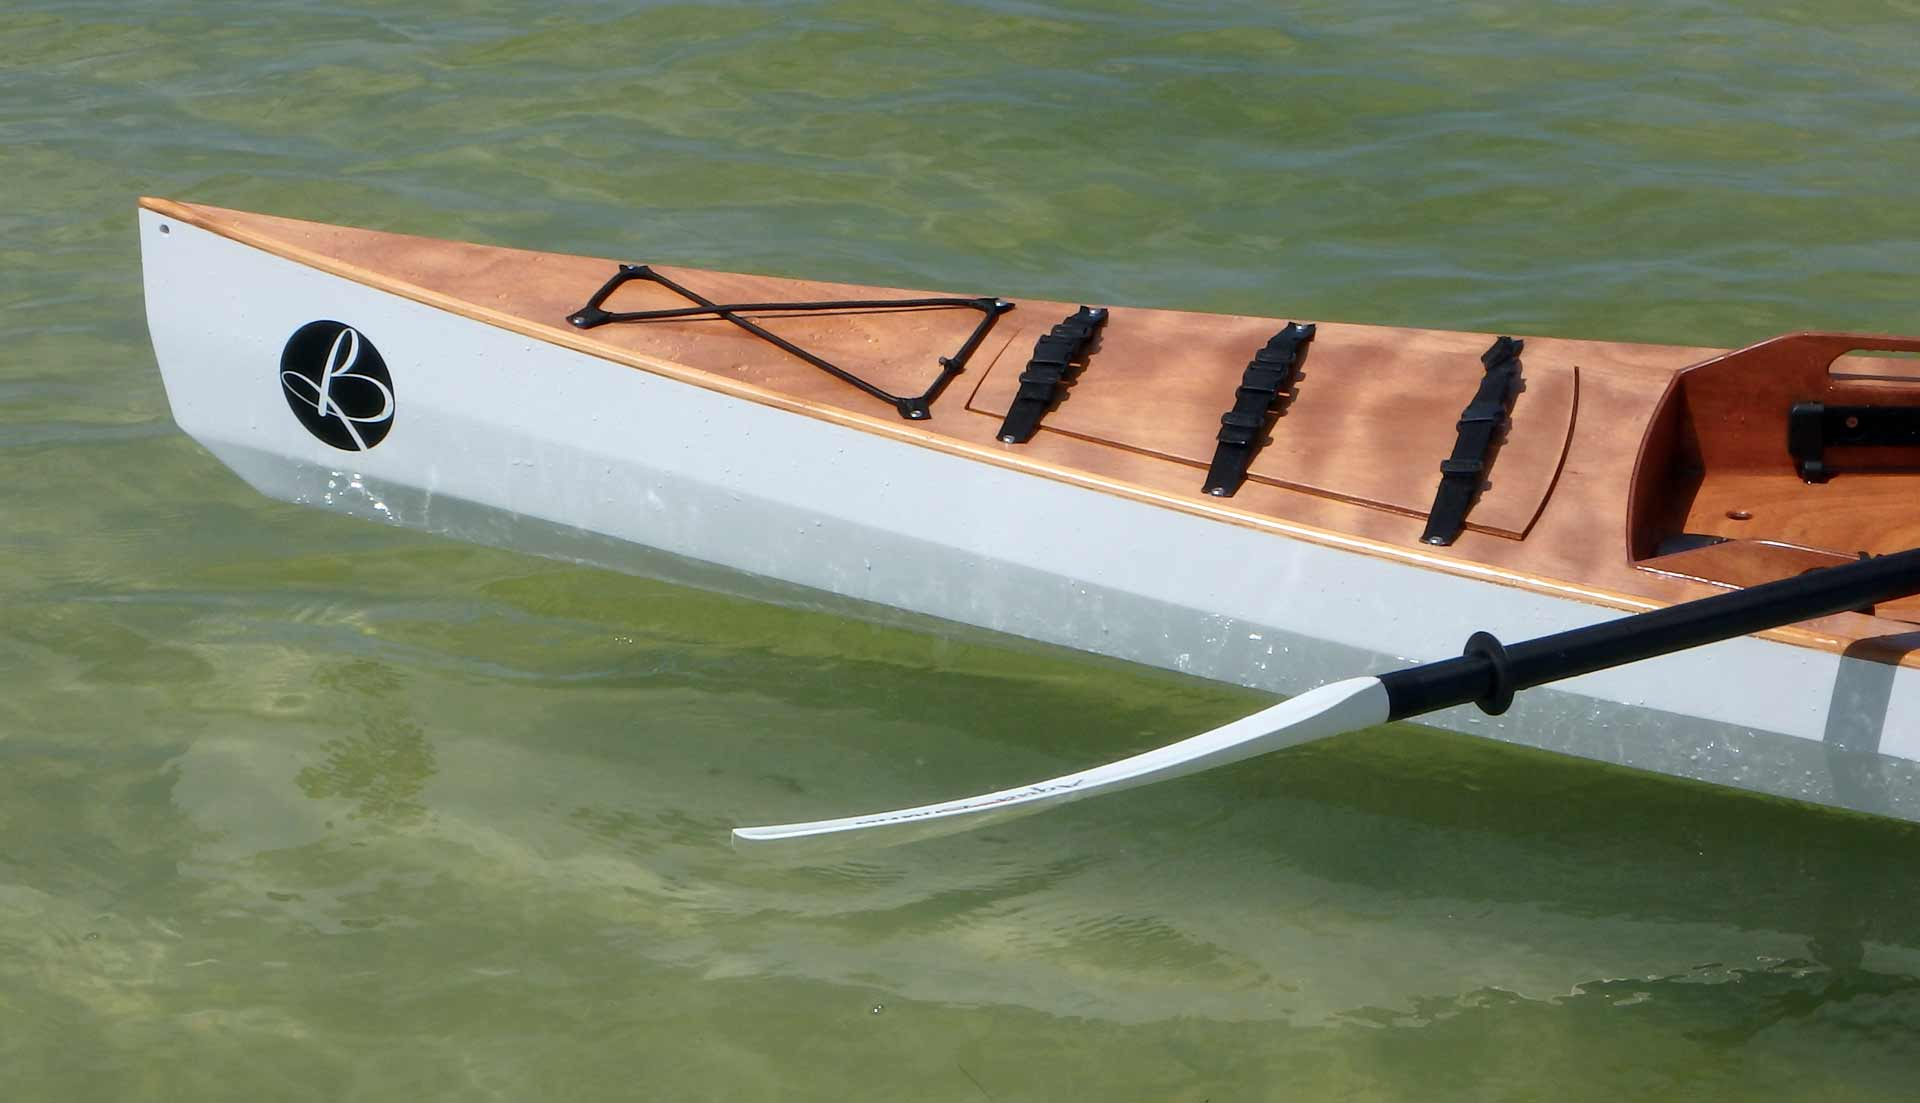 F1430 Fishing kayak | Bedard Yacht Design